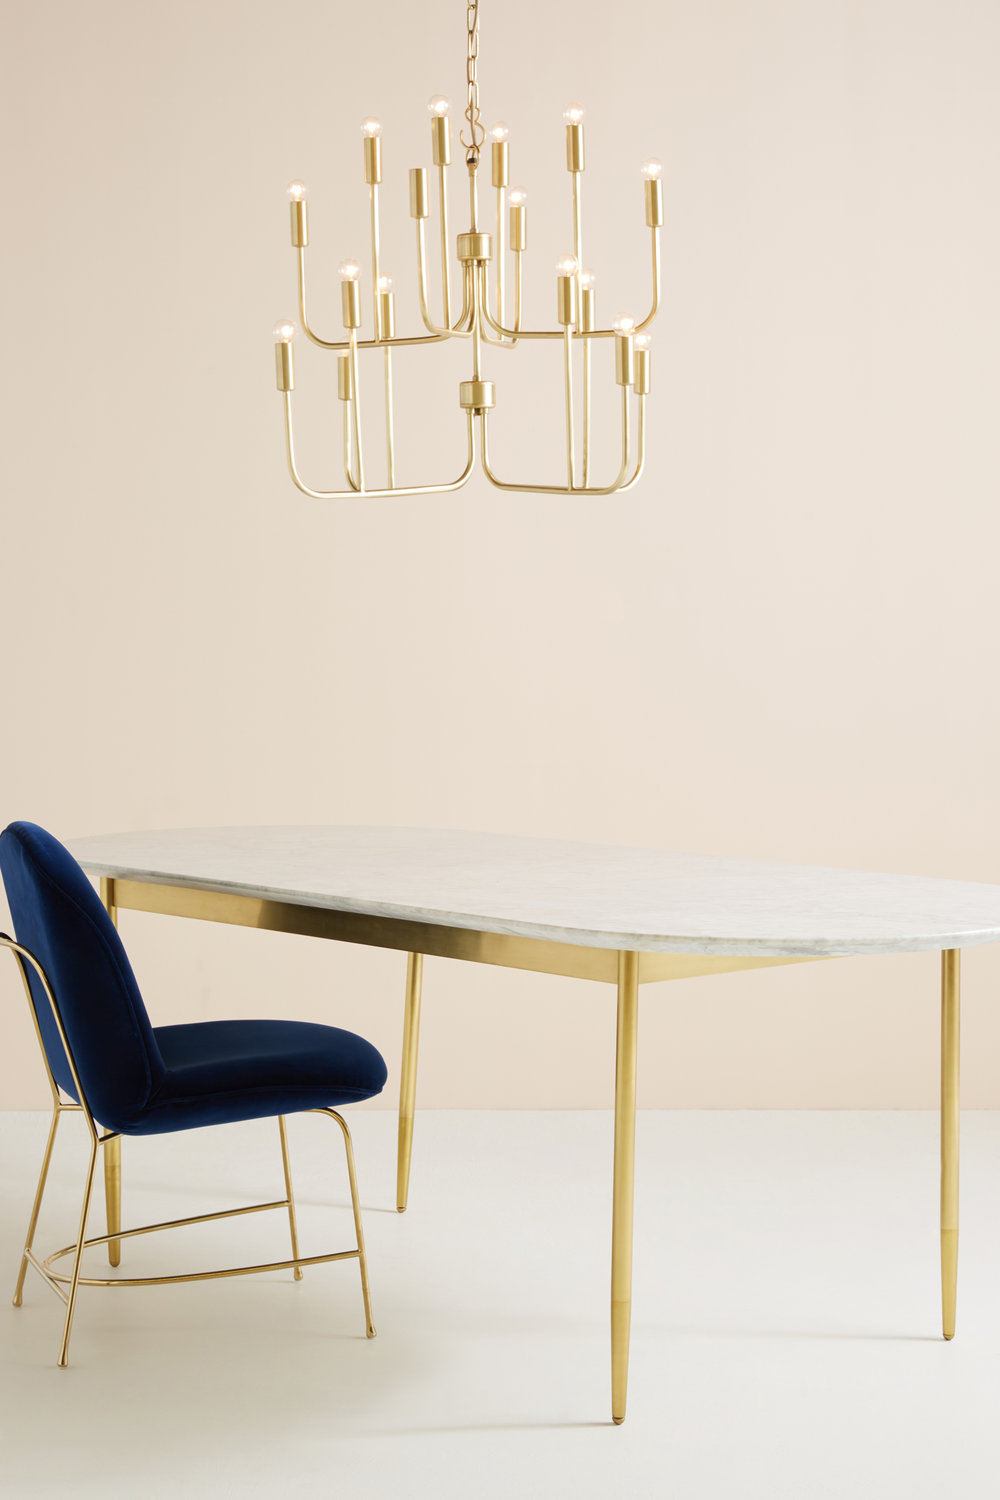 LIV for Interiors / Bethan Gray x Anthropologie